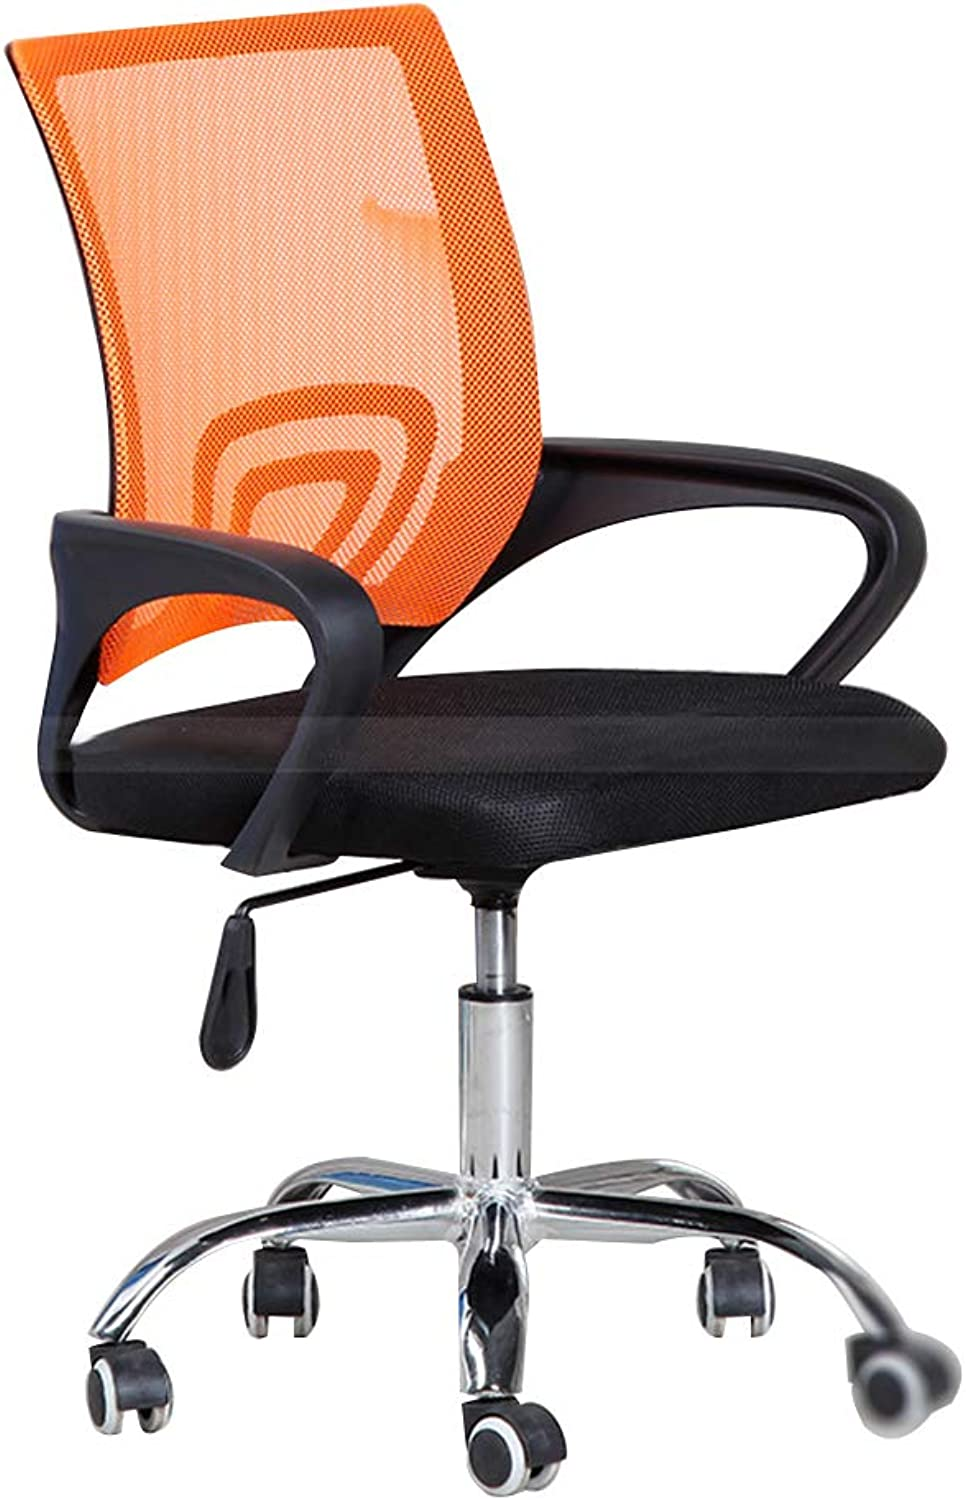 Bseack Swivel Chair Computer Chair, with Roller Swivel Chair 360° redation Conference Chair Suitable for Home Office 4 colors (color   orange)